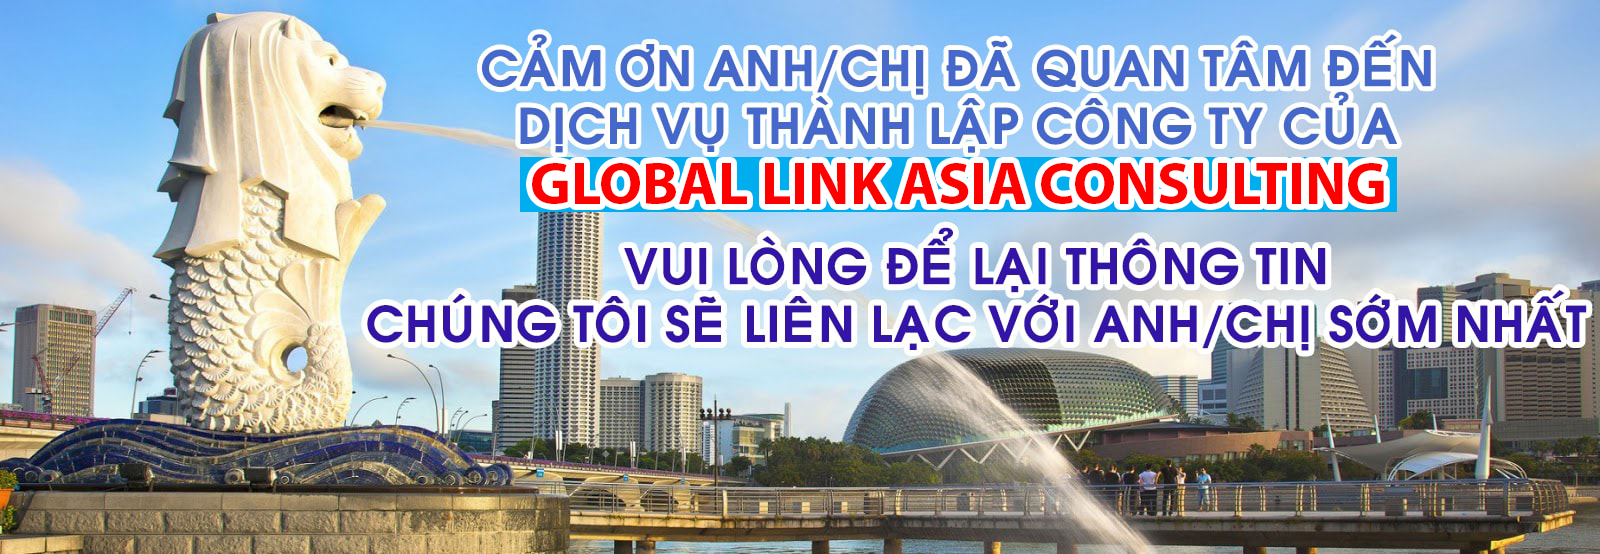 thanh-lap-cong-ty-tai-singapore-1-min